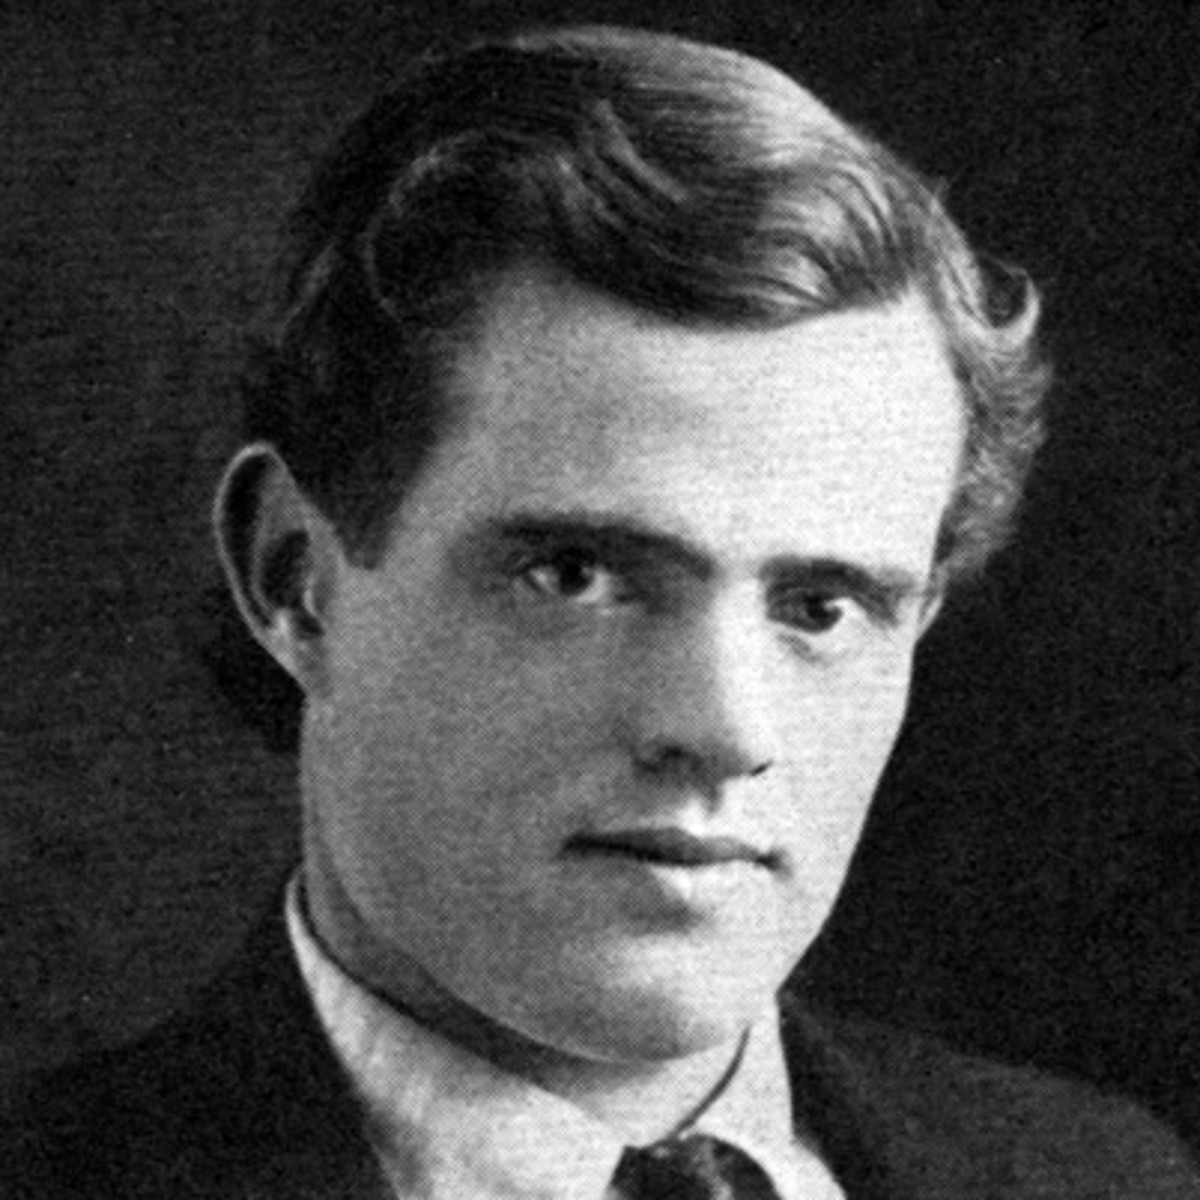 https://www.biography.com/.image/t_share/MTE4MDAzNDEwNjAzODM2OTQy/jack-london-9385499-1-402.jpg